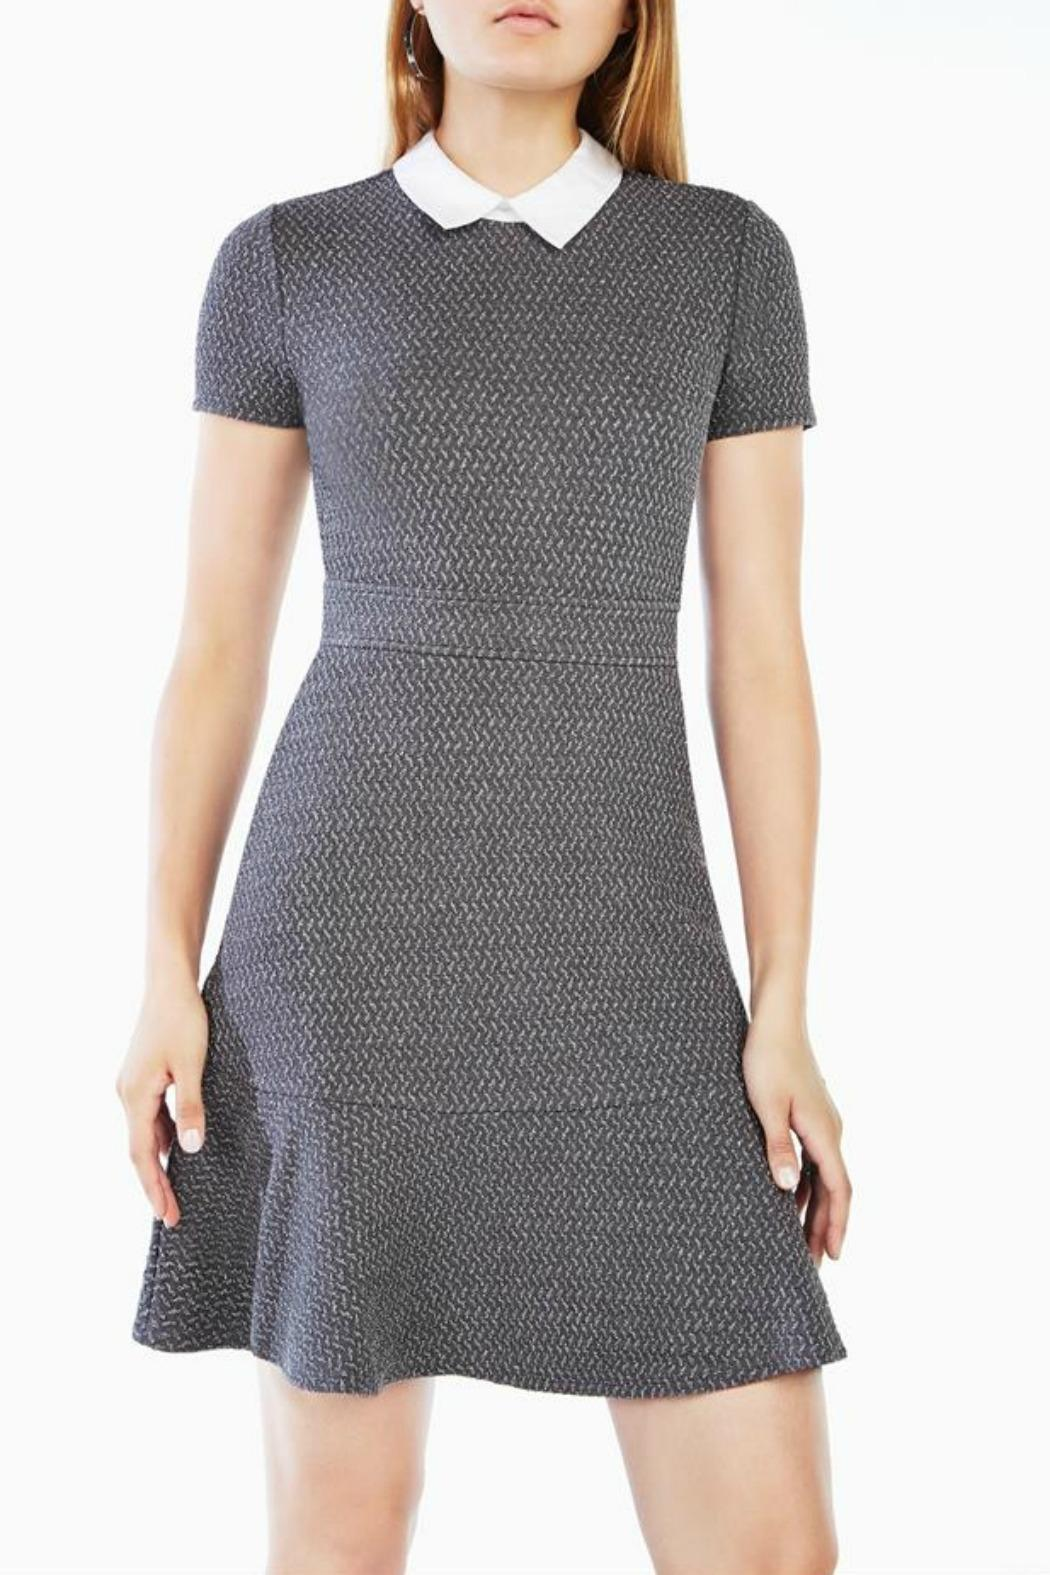 Shop for womens collared shirt dress online at Target. Free shipping on purchases over $35 and save 5% every day with your Target REDcard.